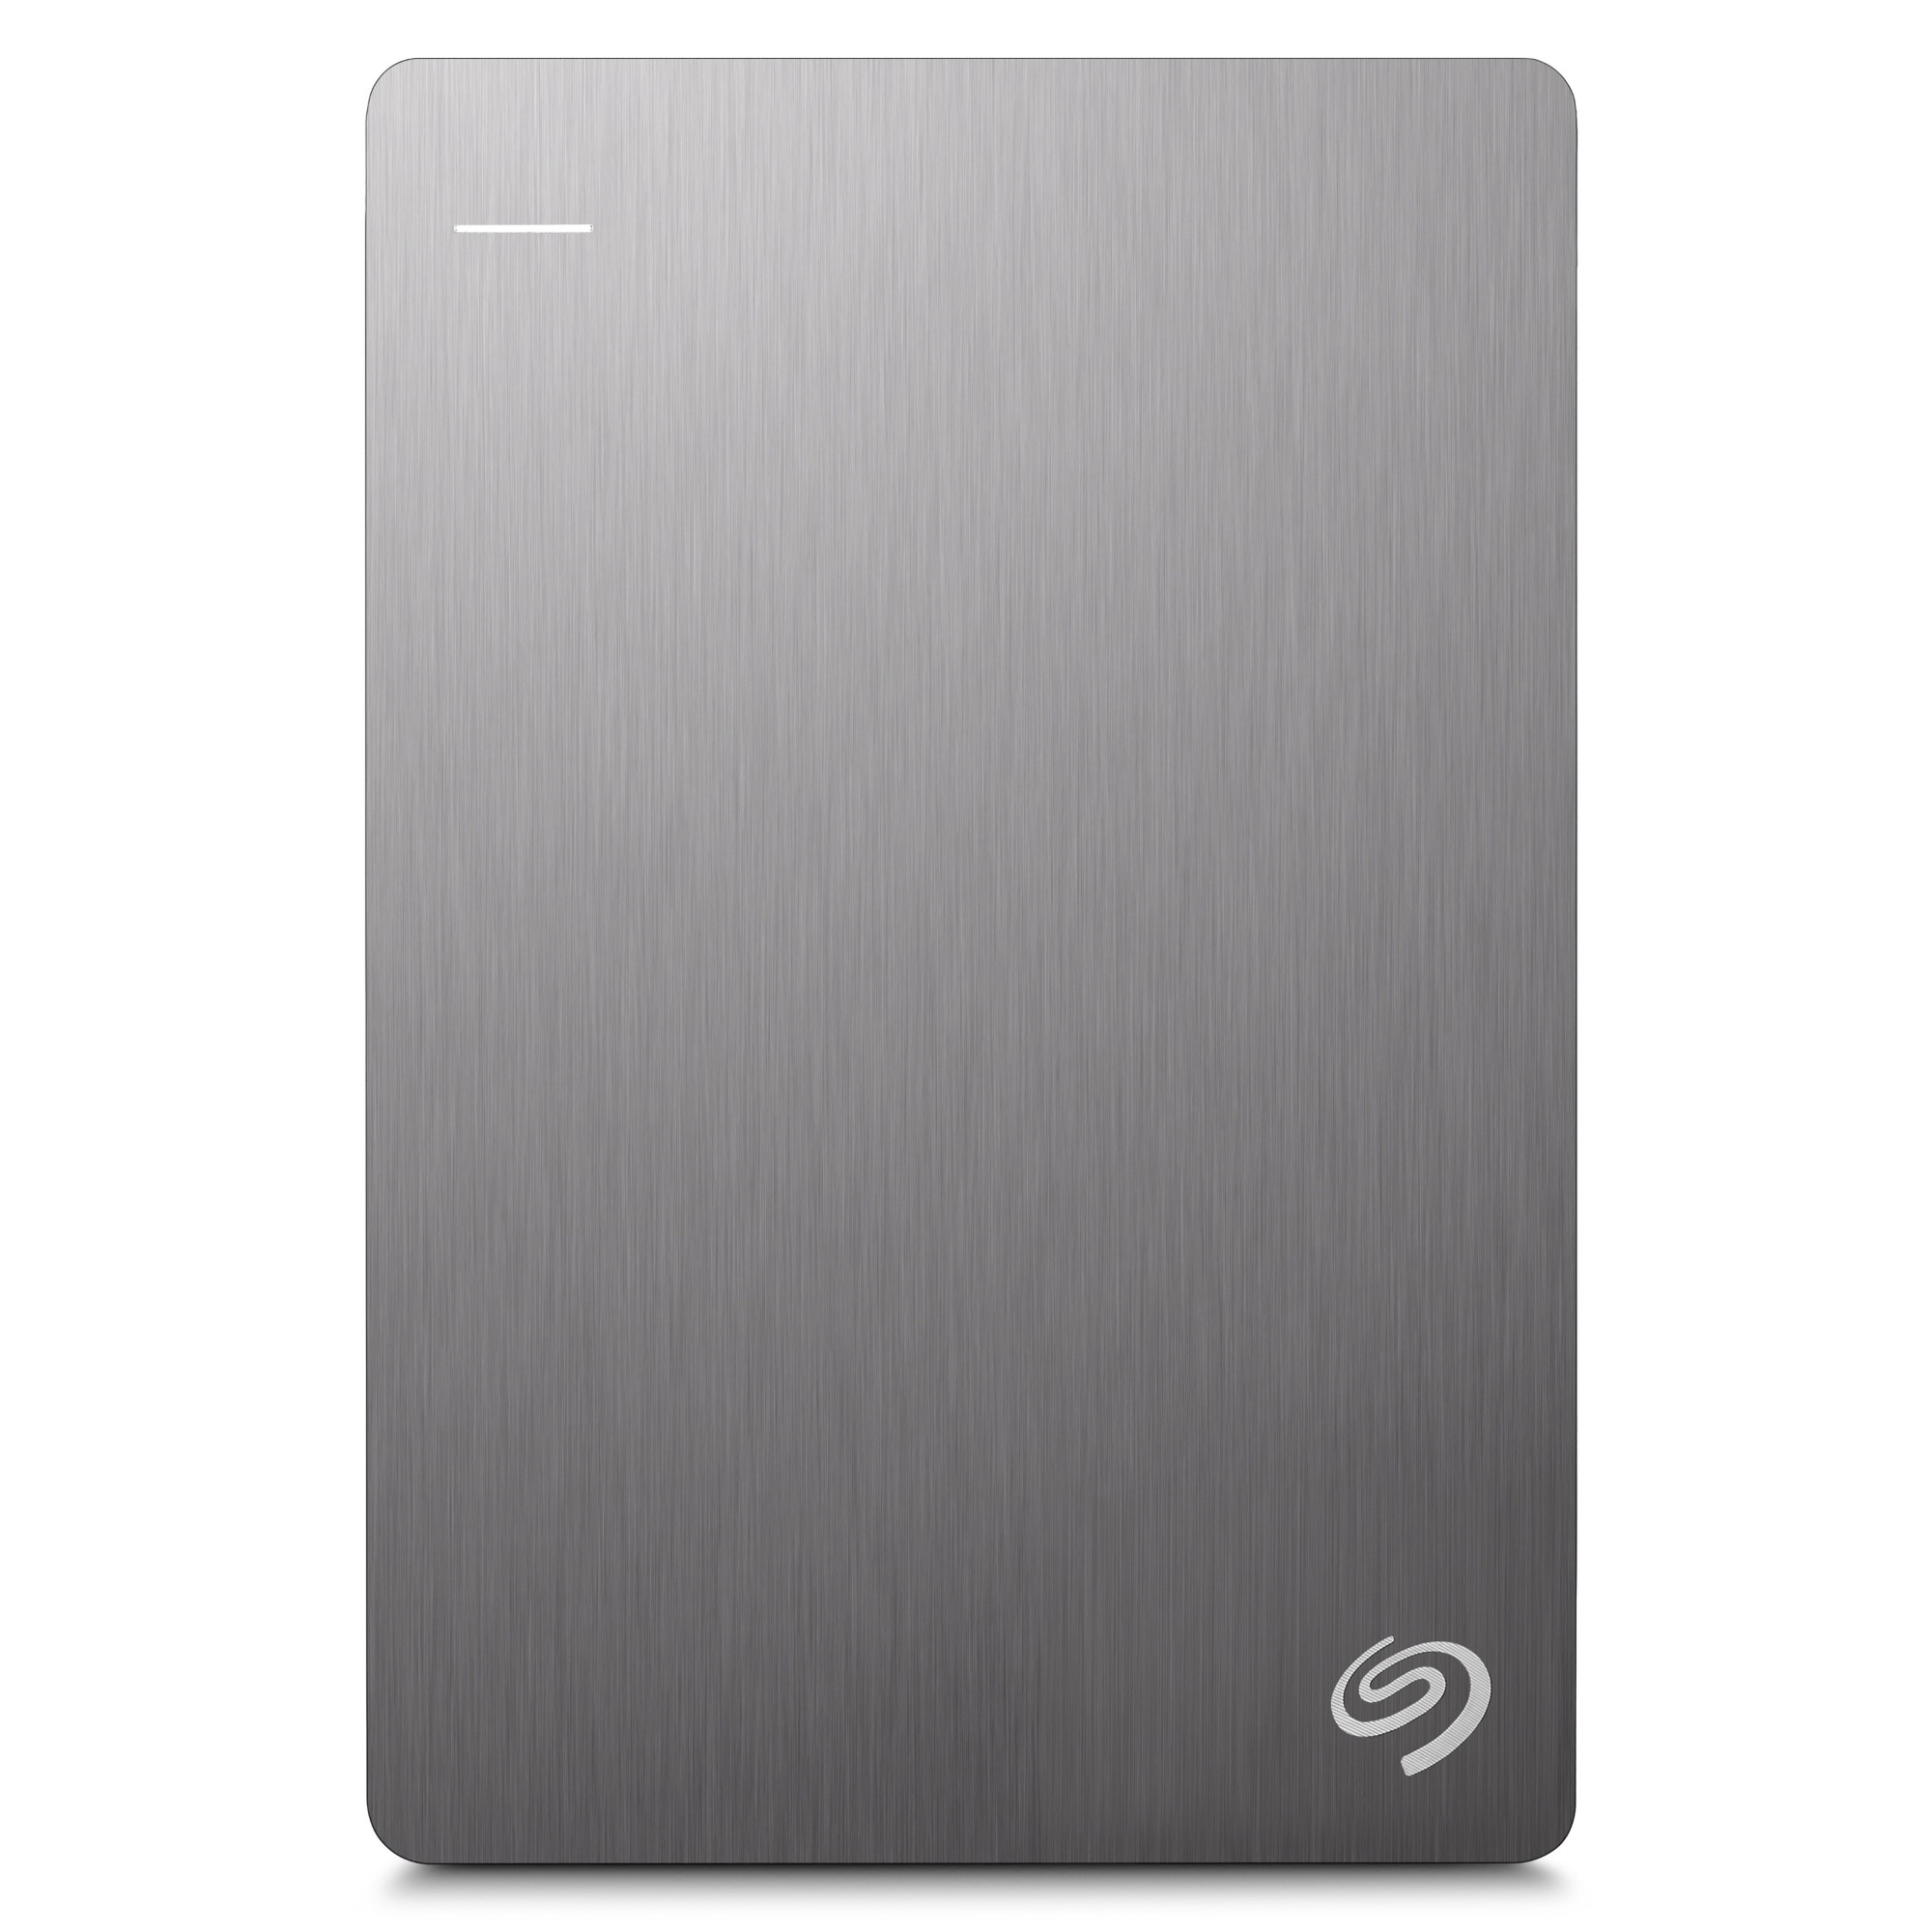 Seagate Backup Plus Slim 2000GB Silver external hard drive